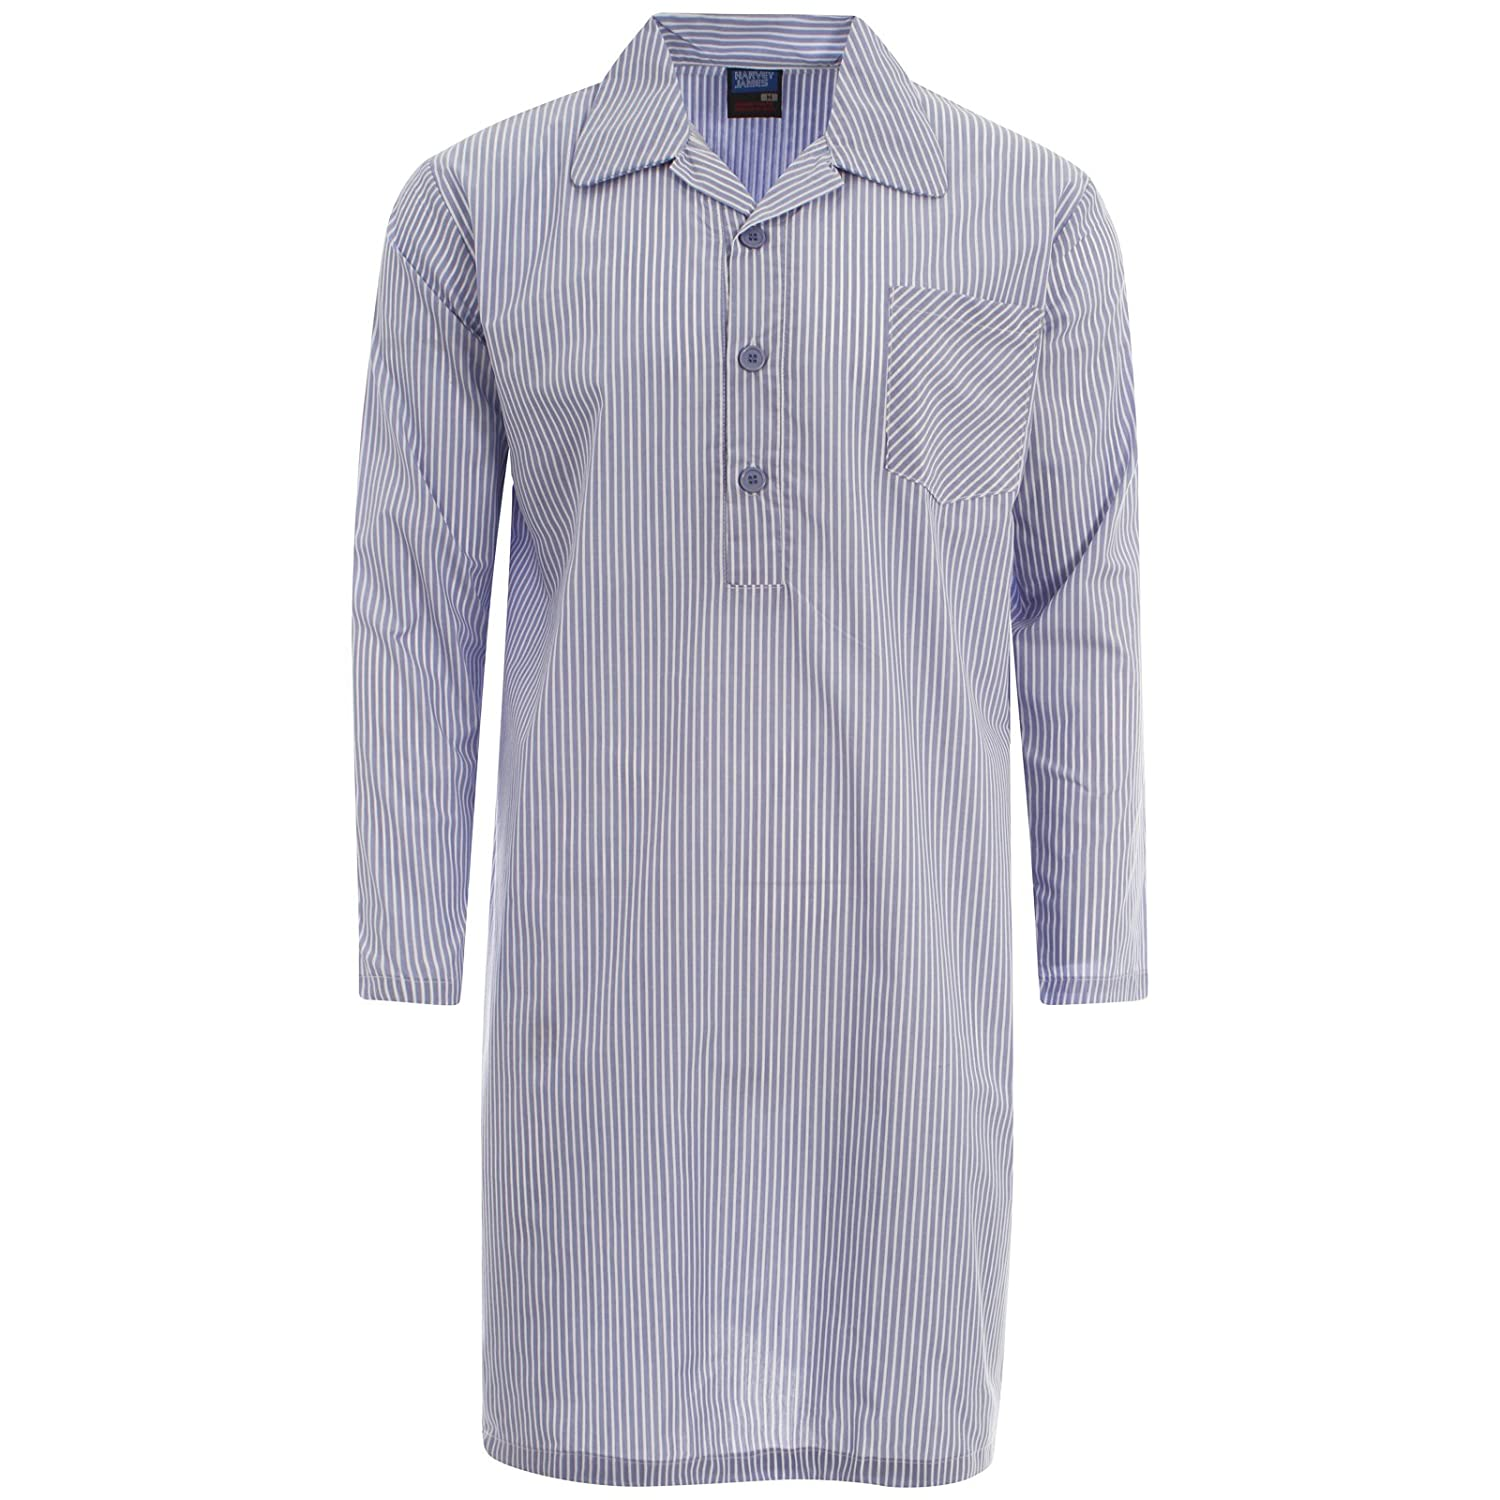 Harvey James Mens Yarn Dyed Long Sleeve Nightshirt Pajama Top